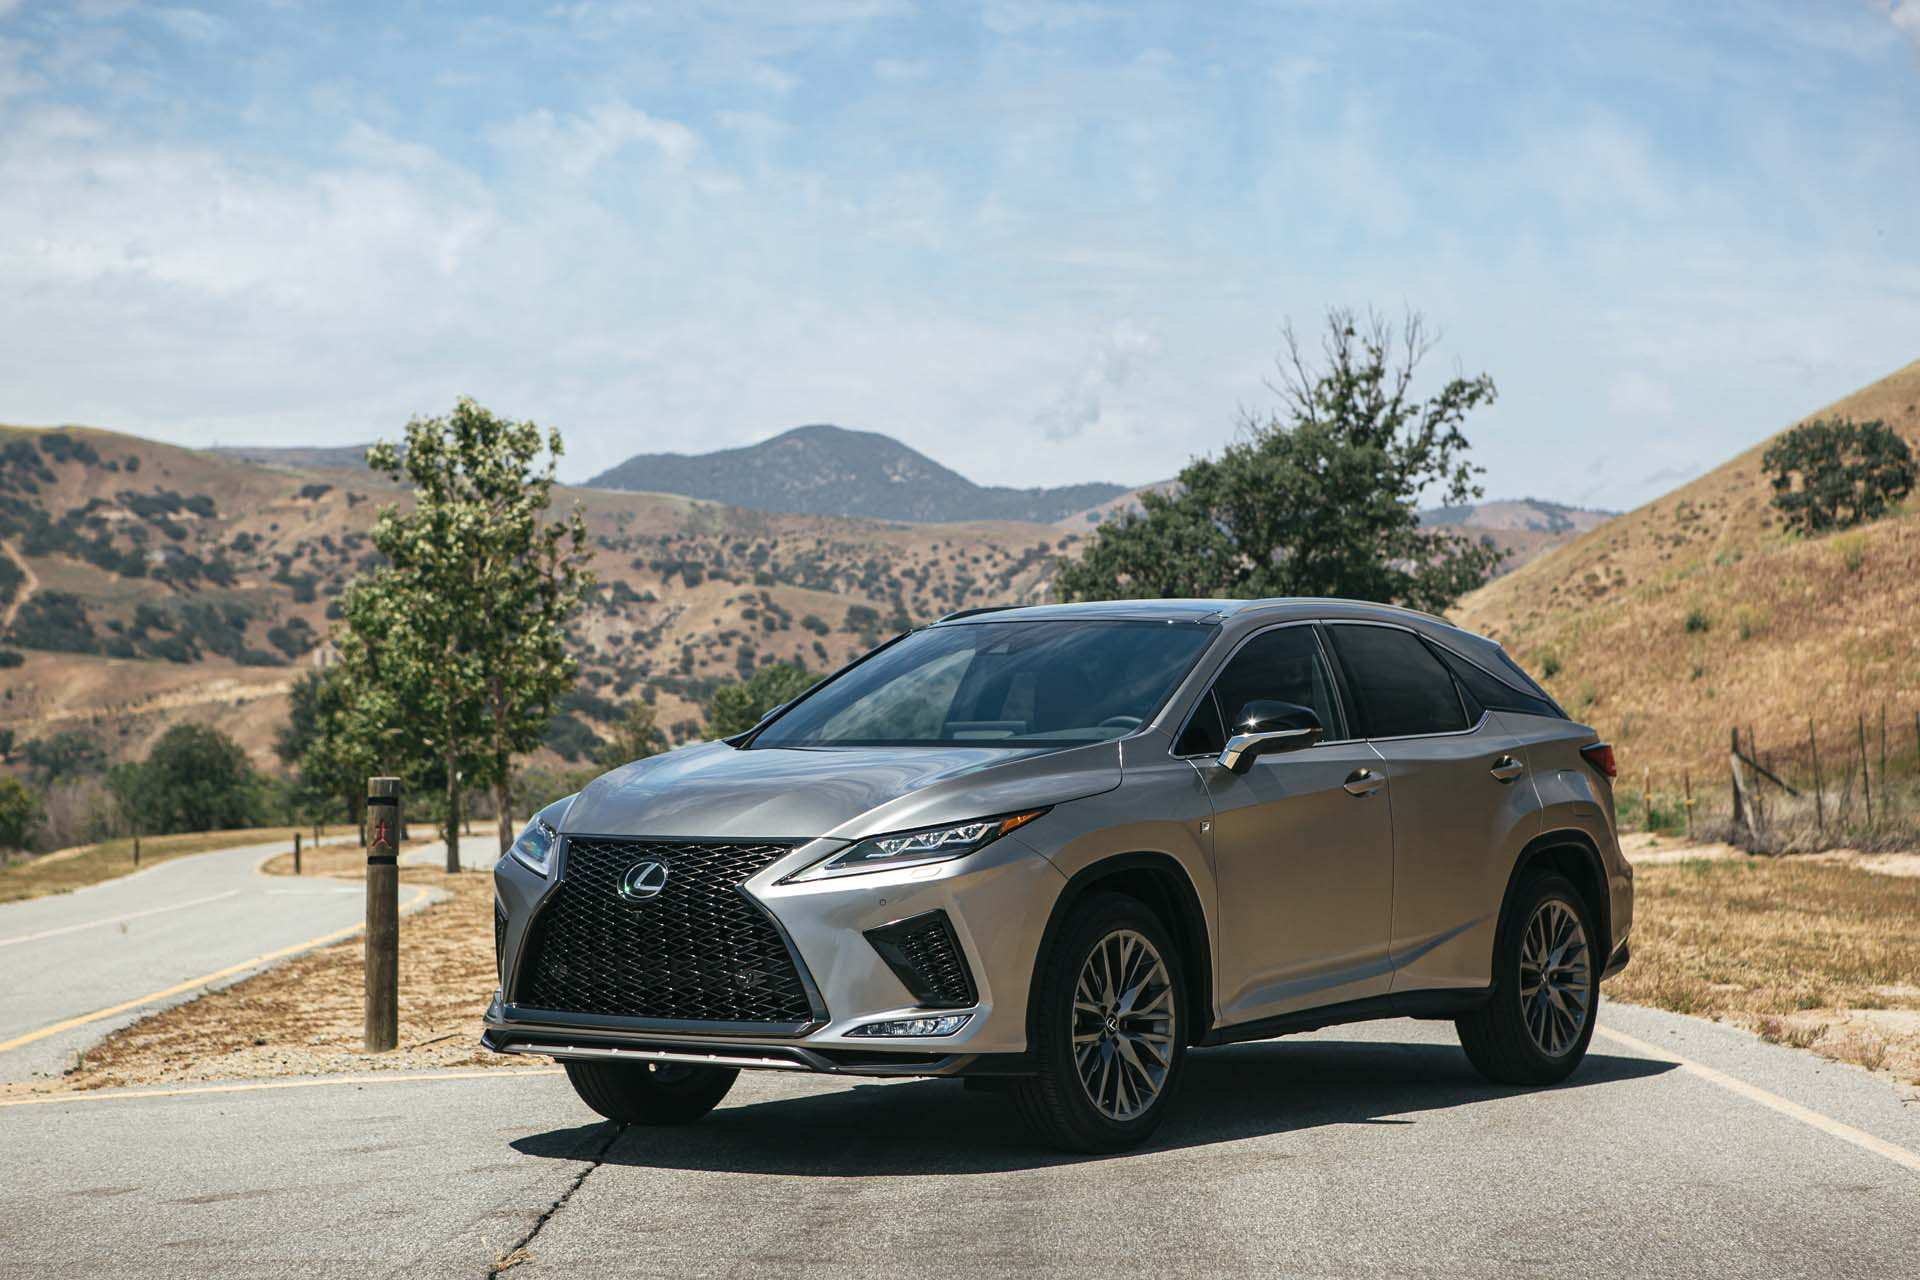 20 Gallery of Lexus Suv Gx 2020 Redesign and Concept by Lexus Suv Gx 2020